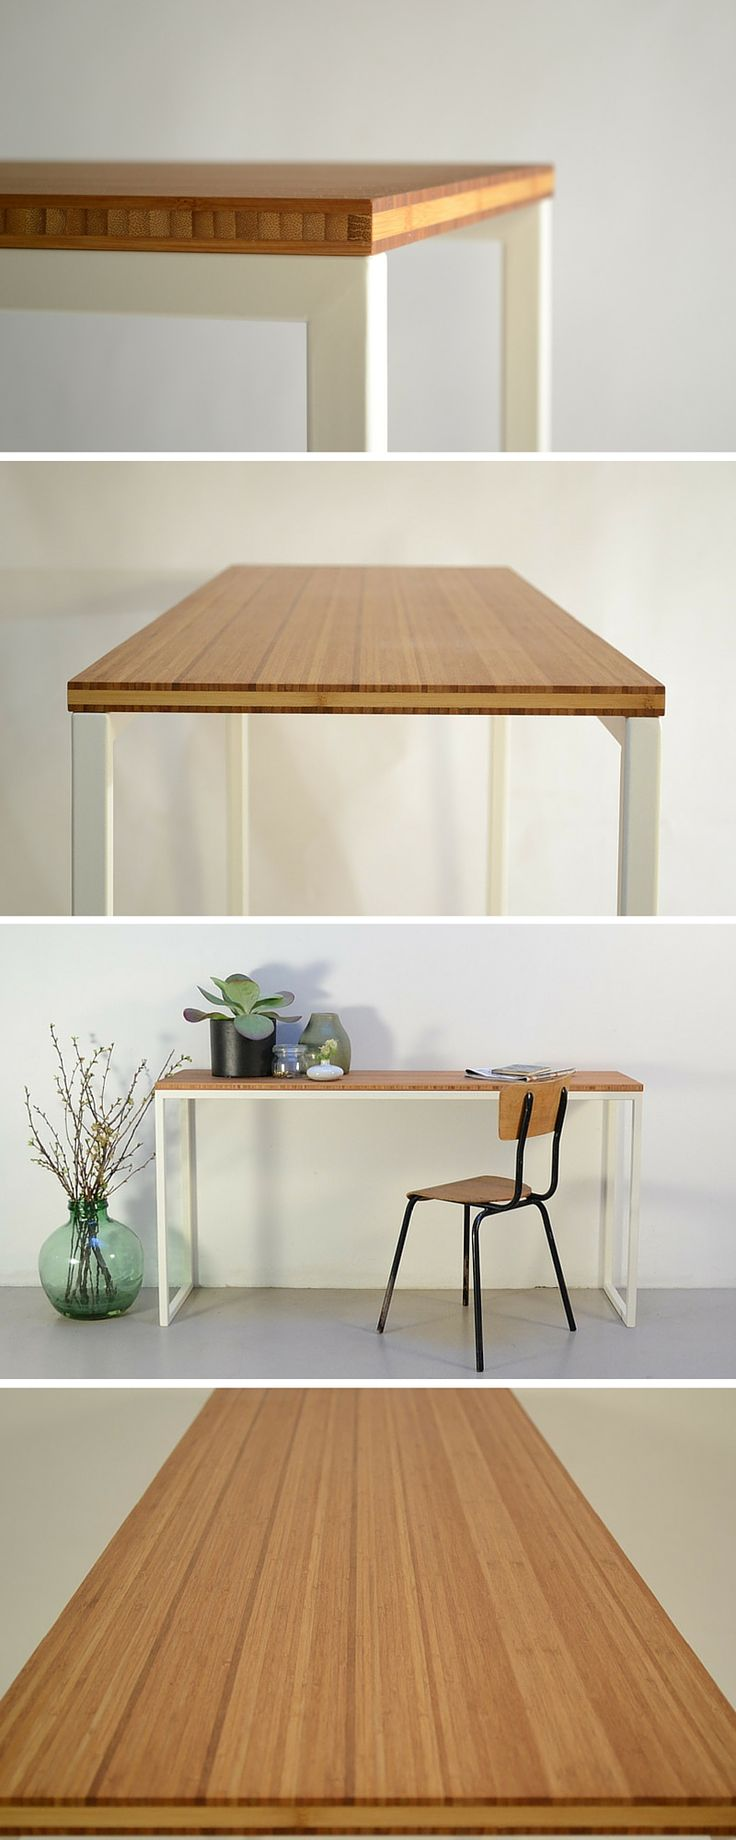 Minimalist table made of steel and bamboo #table#steel#bamboo